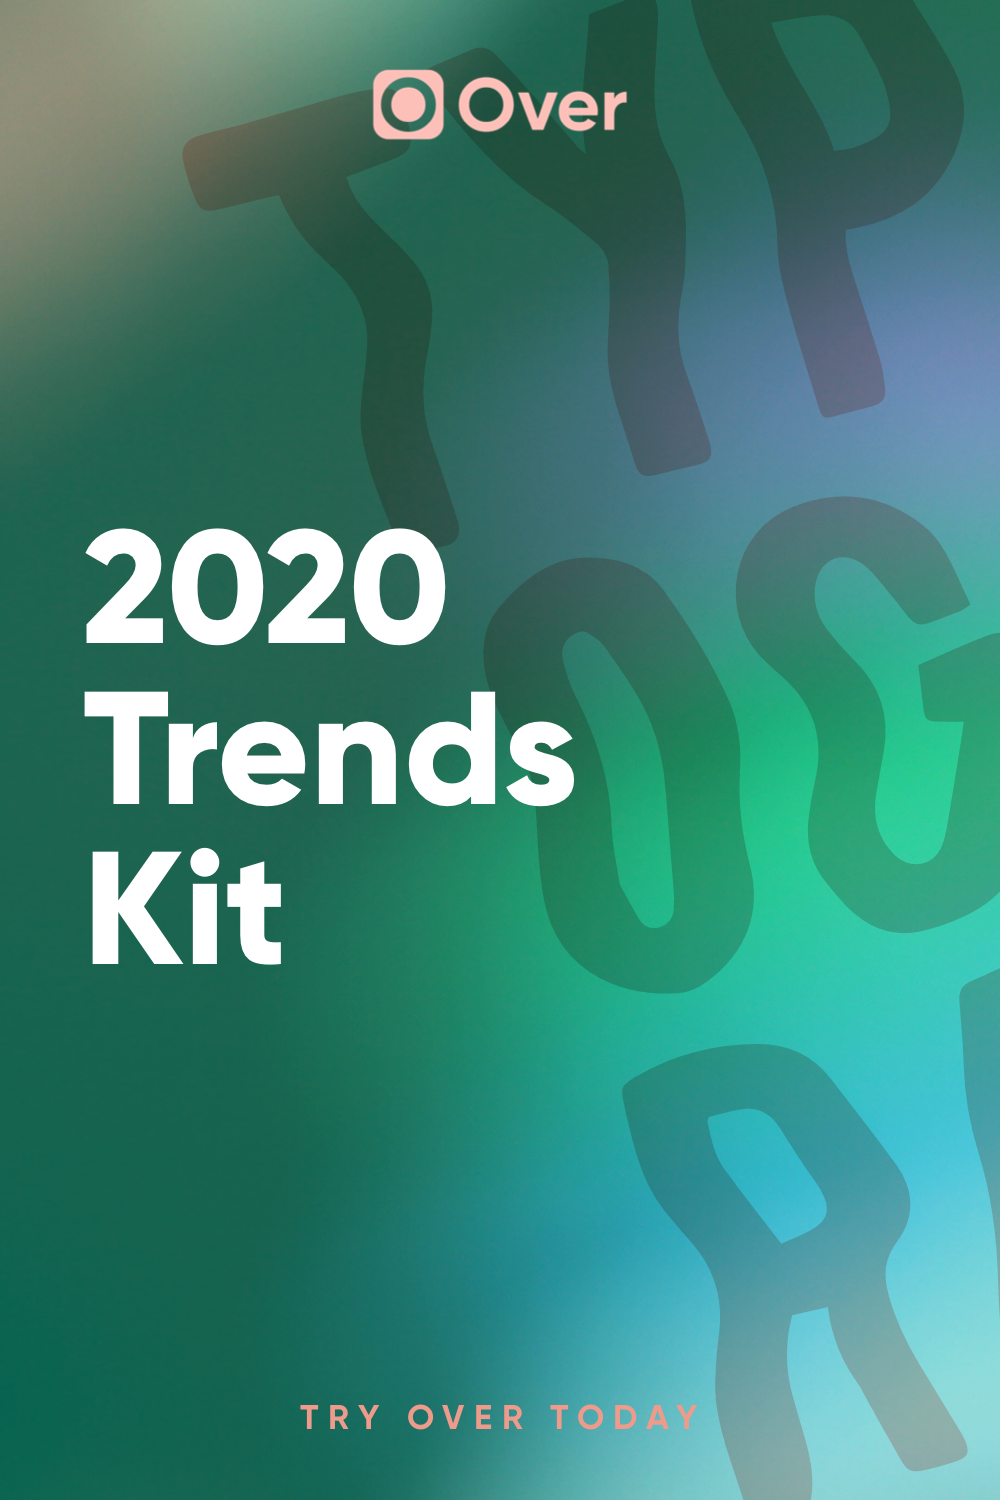 Discover 10 design trends that will shape 2020. Then